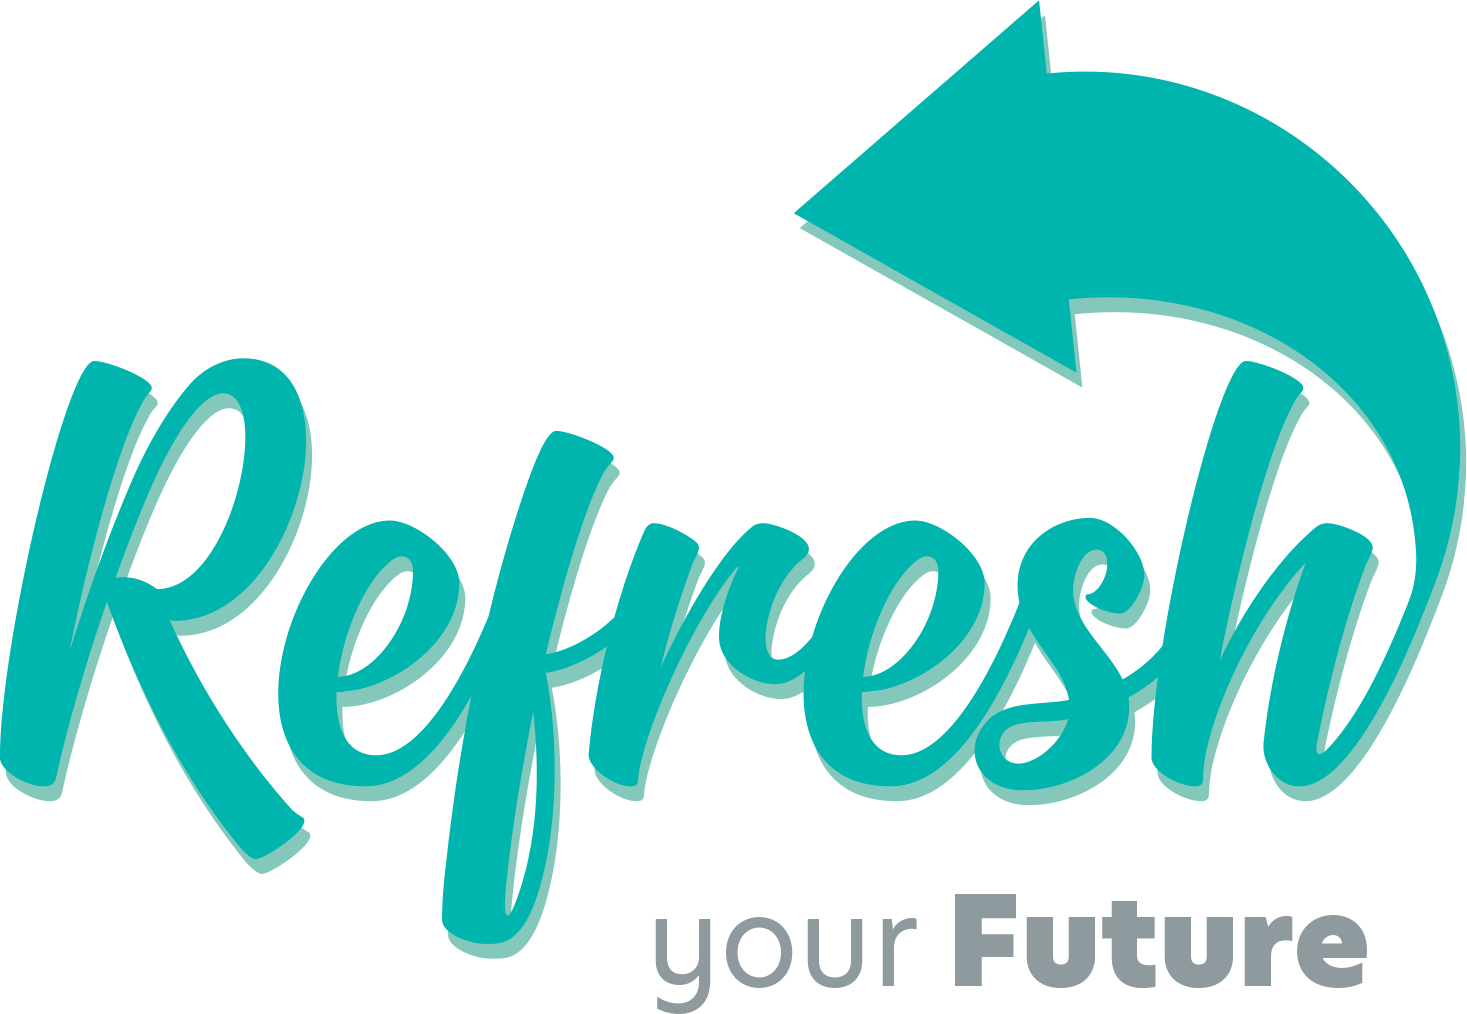 Refresh your future logo